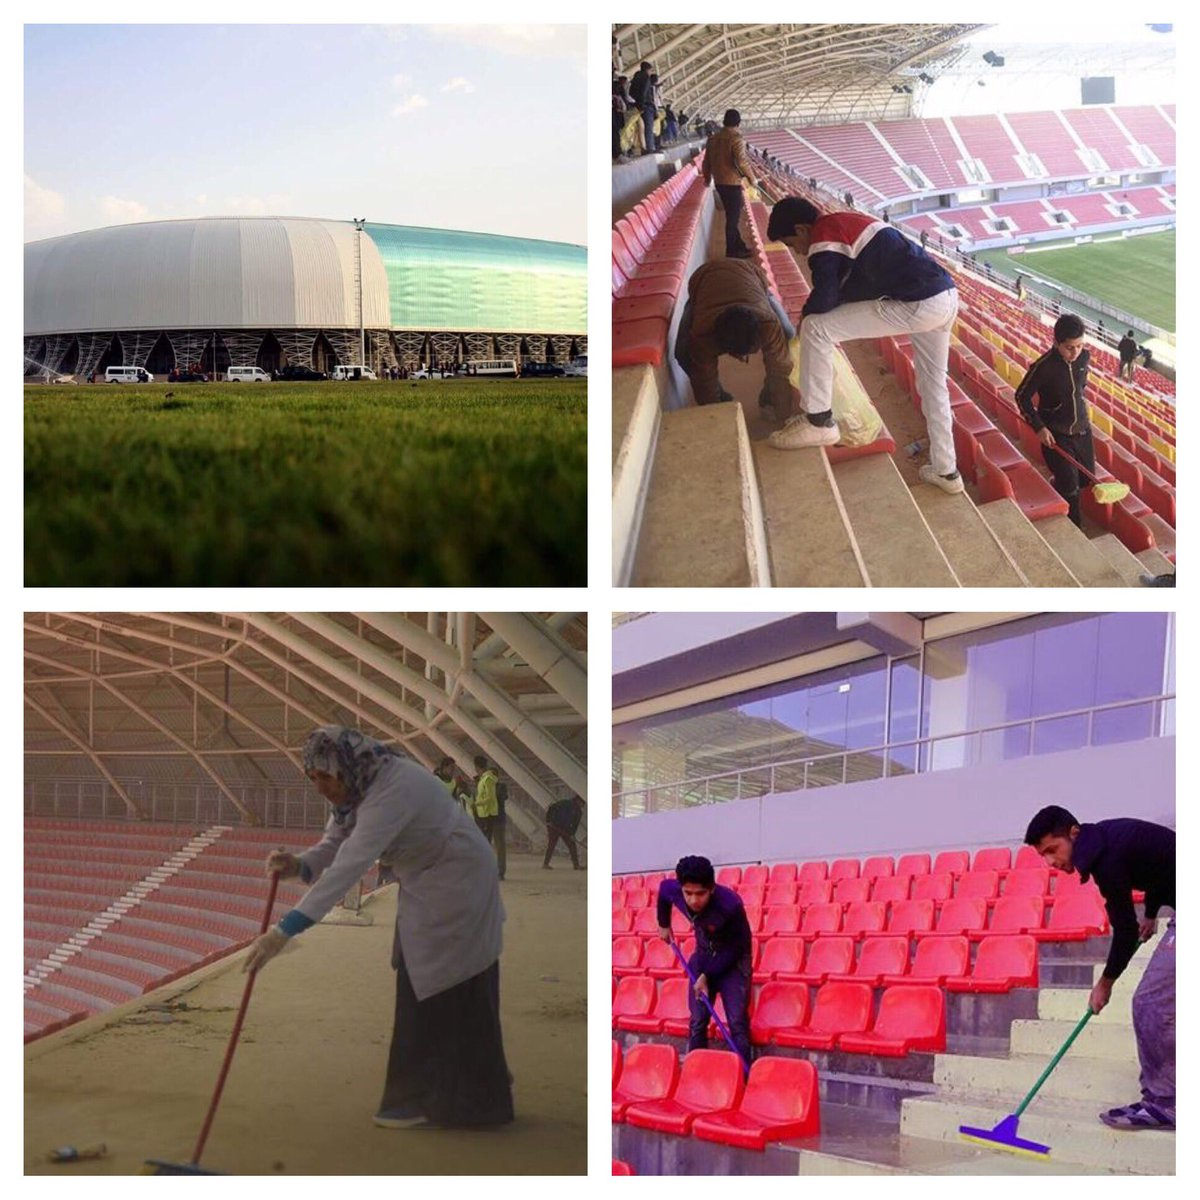 Iraq Basra #Karbala stadiums